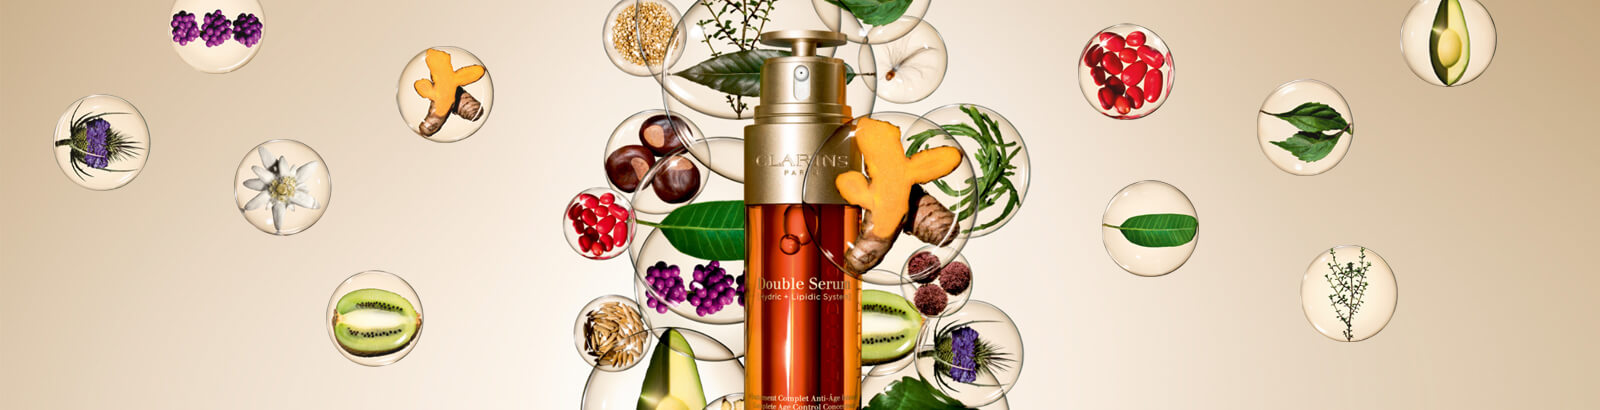 Double Serum. 21 potent plant extracts for our most powerful age control concentrate ever.